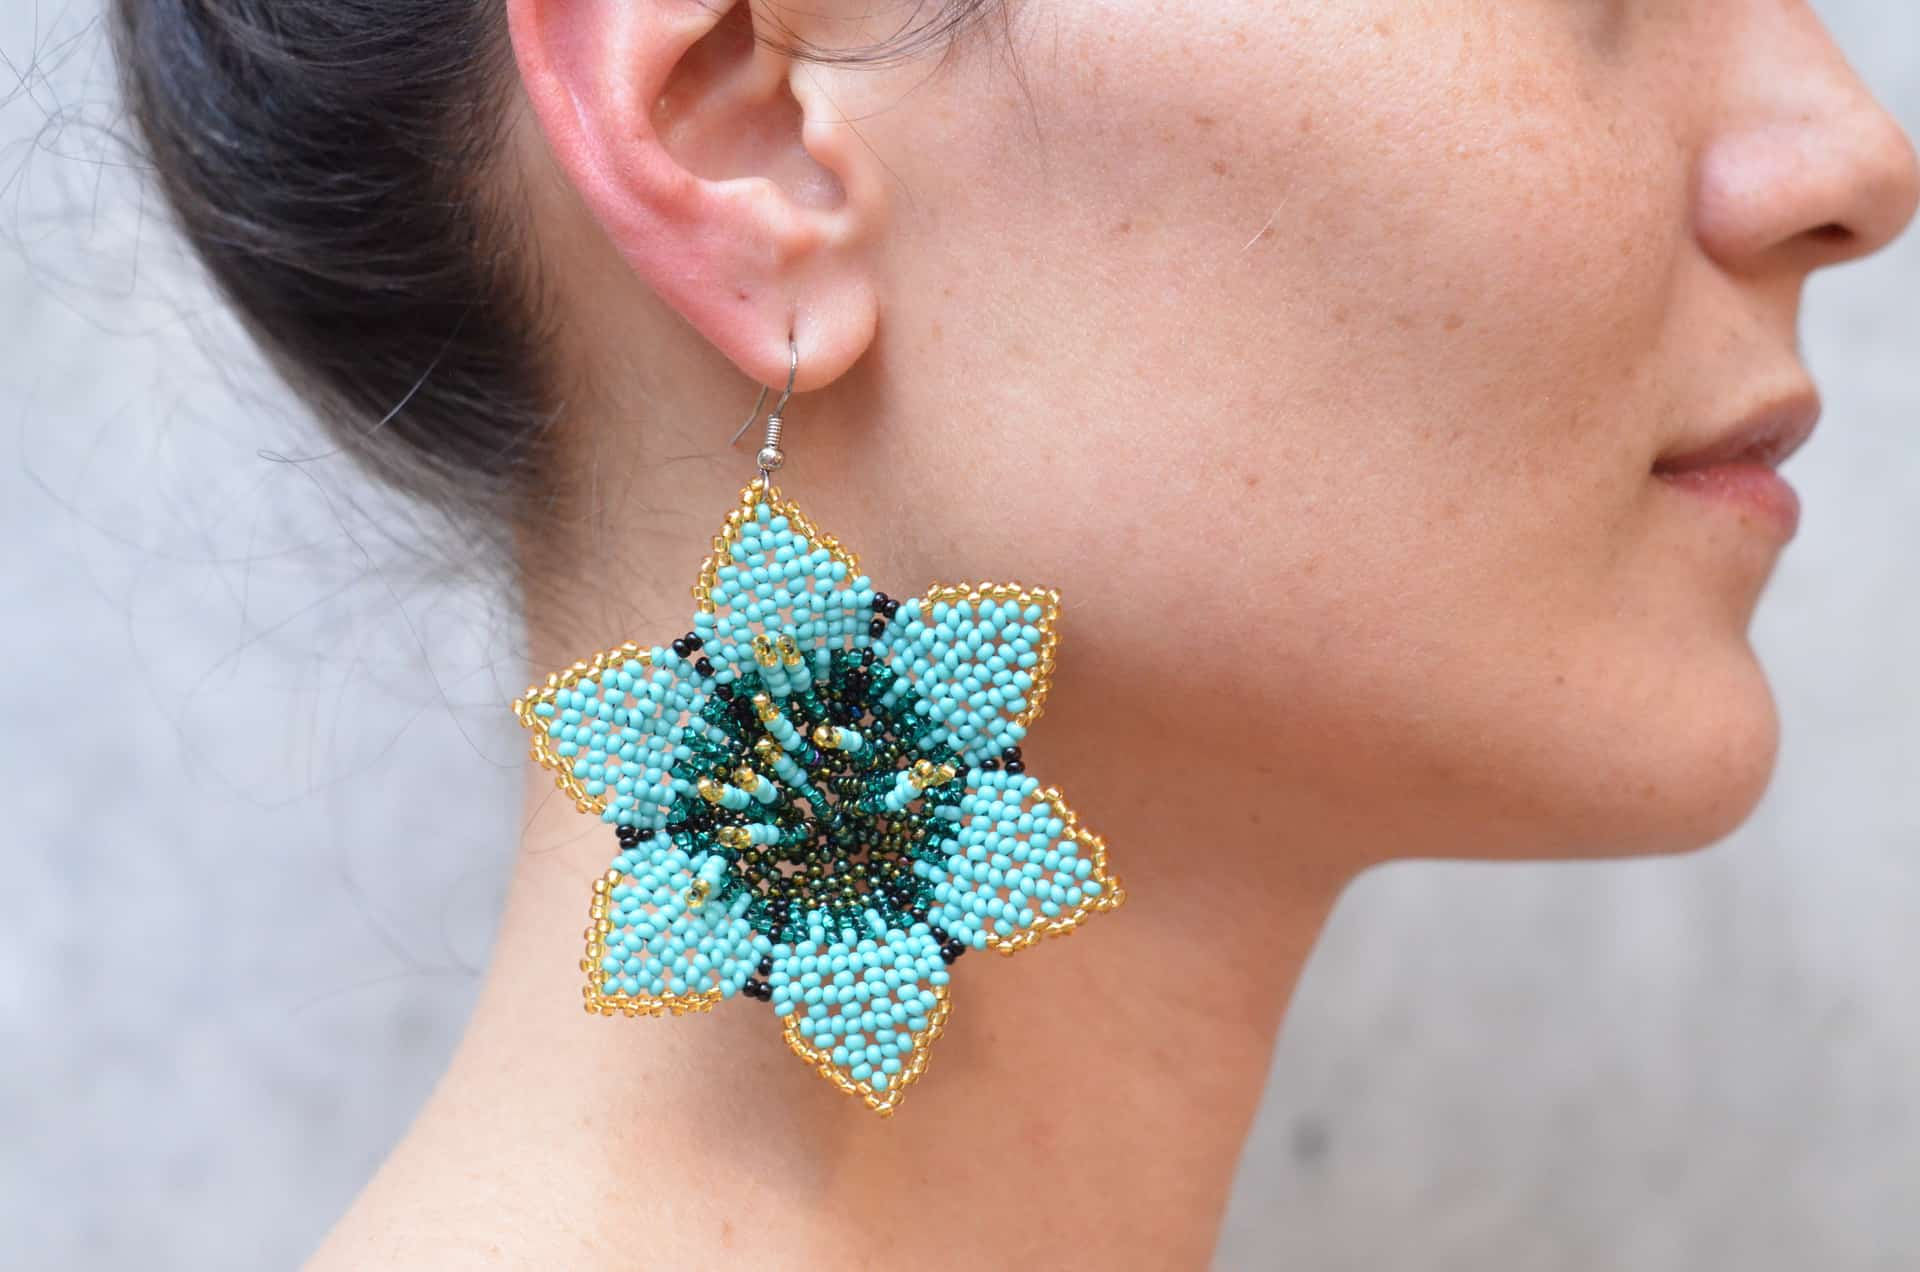 A woman wearing a star-shaped colorful earring